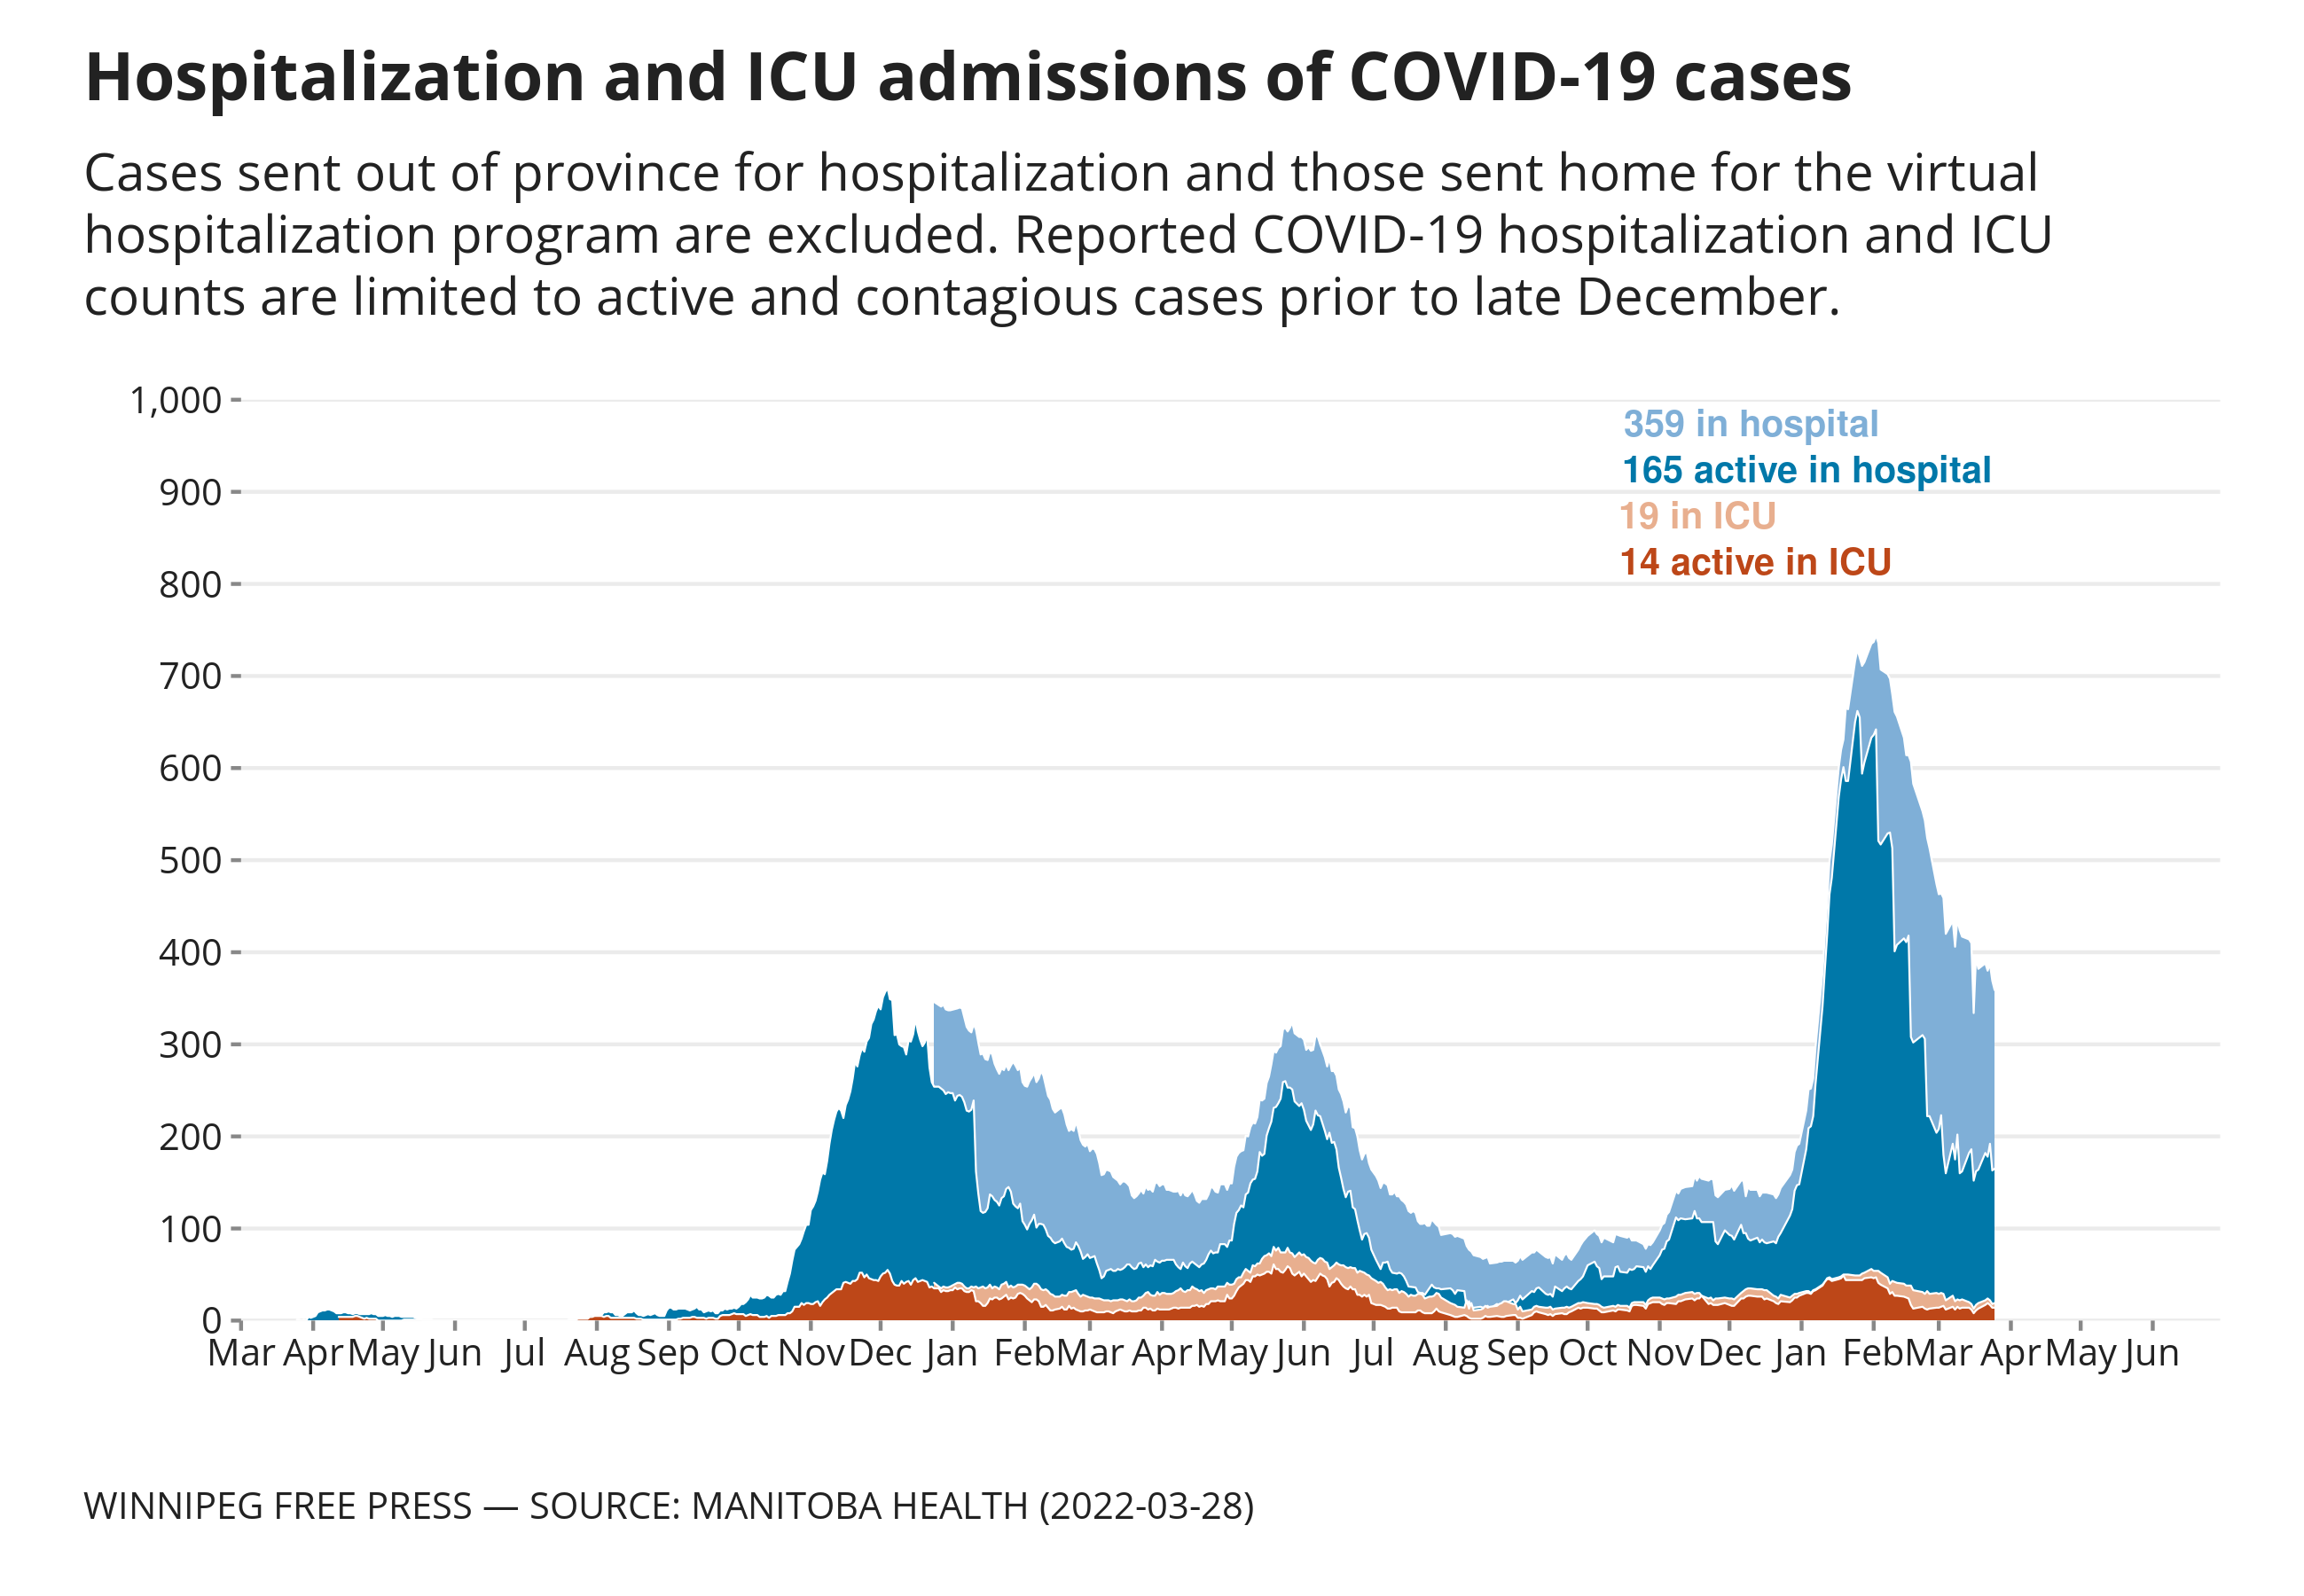 Chart showing daily hospitalizations and ICU admissions for COVID-19 cases